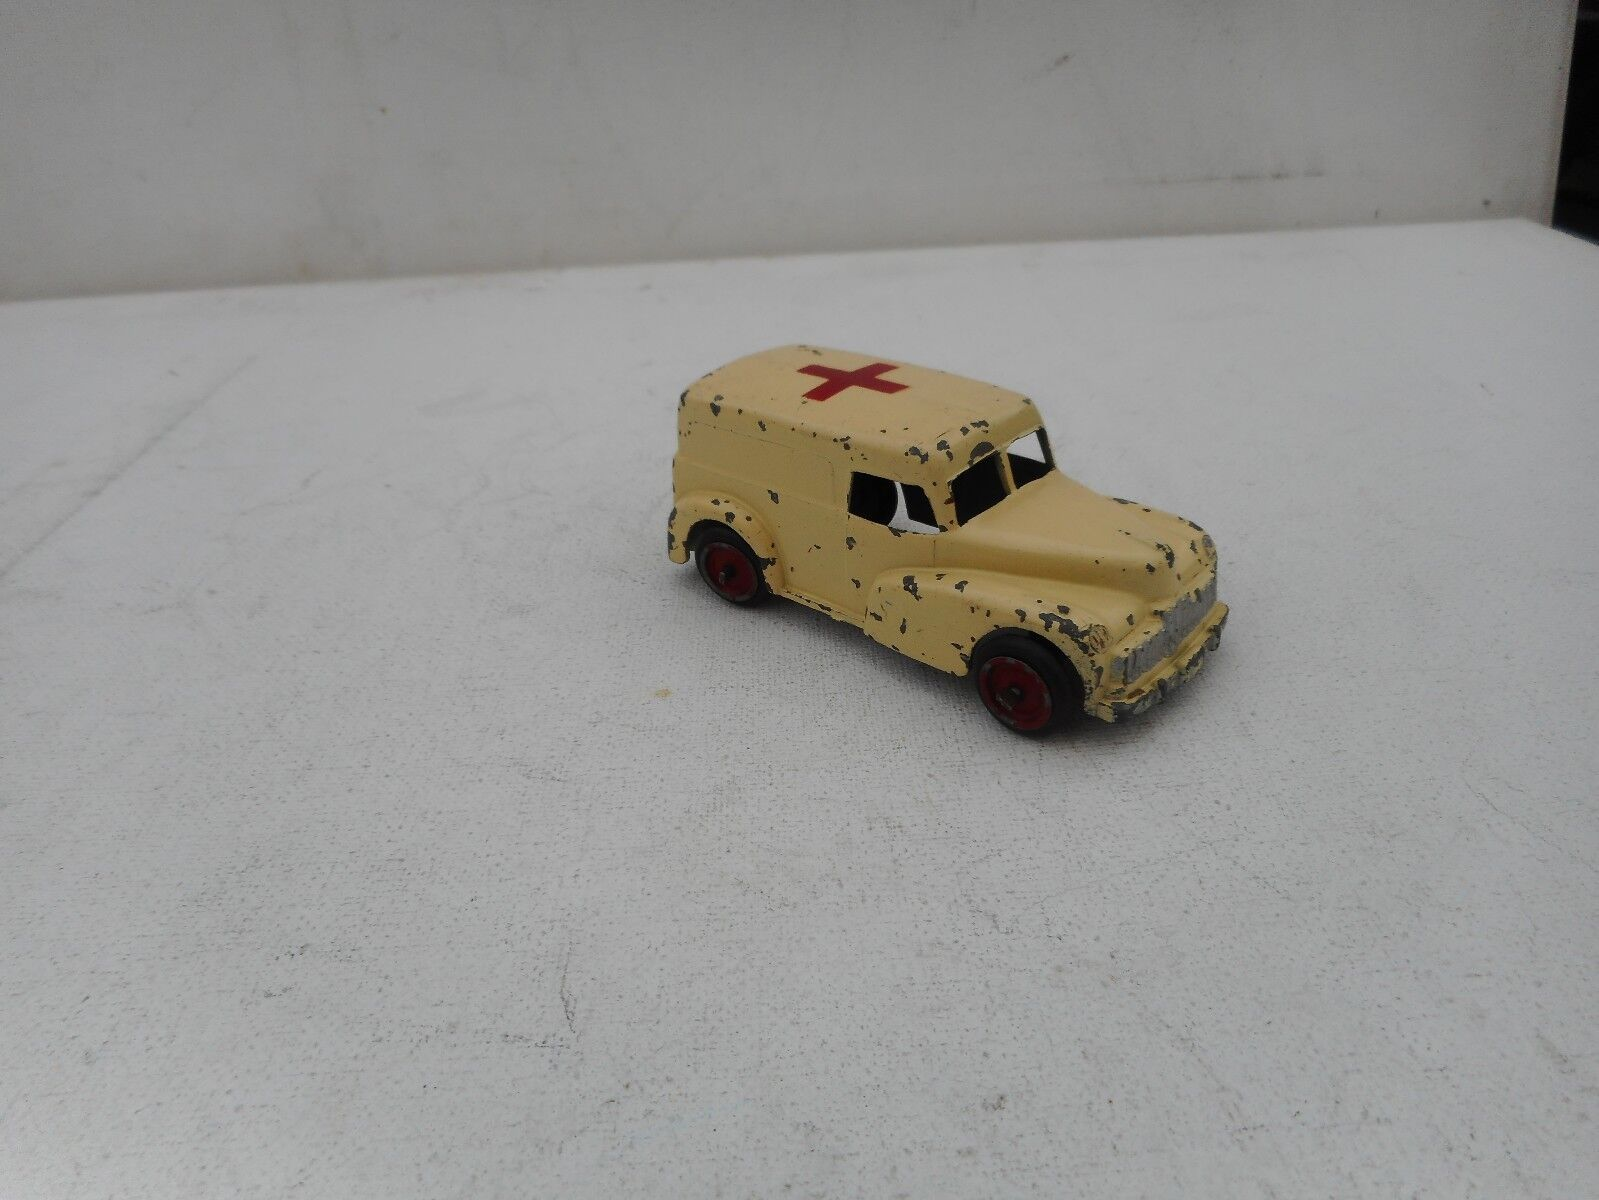 SEPTOY DIECAST DIECAST DIECAST BELGIE  VINTAGE 1 43 AMBULANCE USED CONDITION  RARE SELTEN    2a95cd